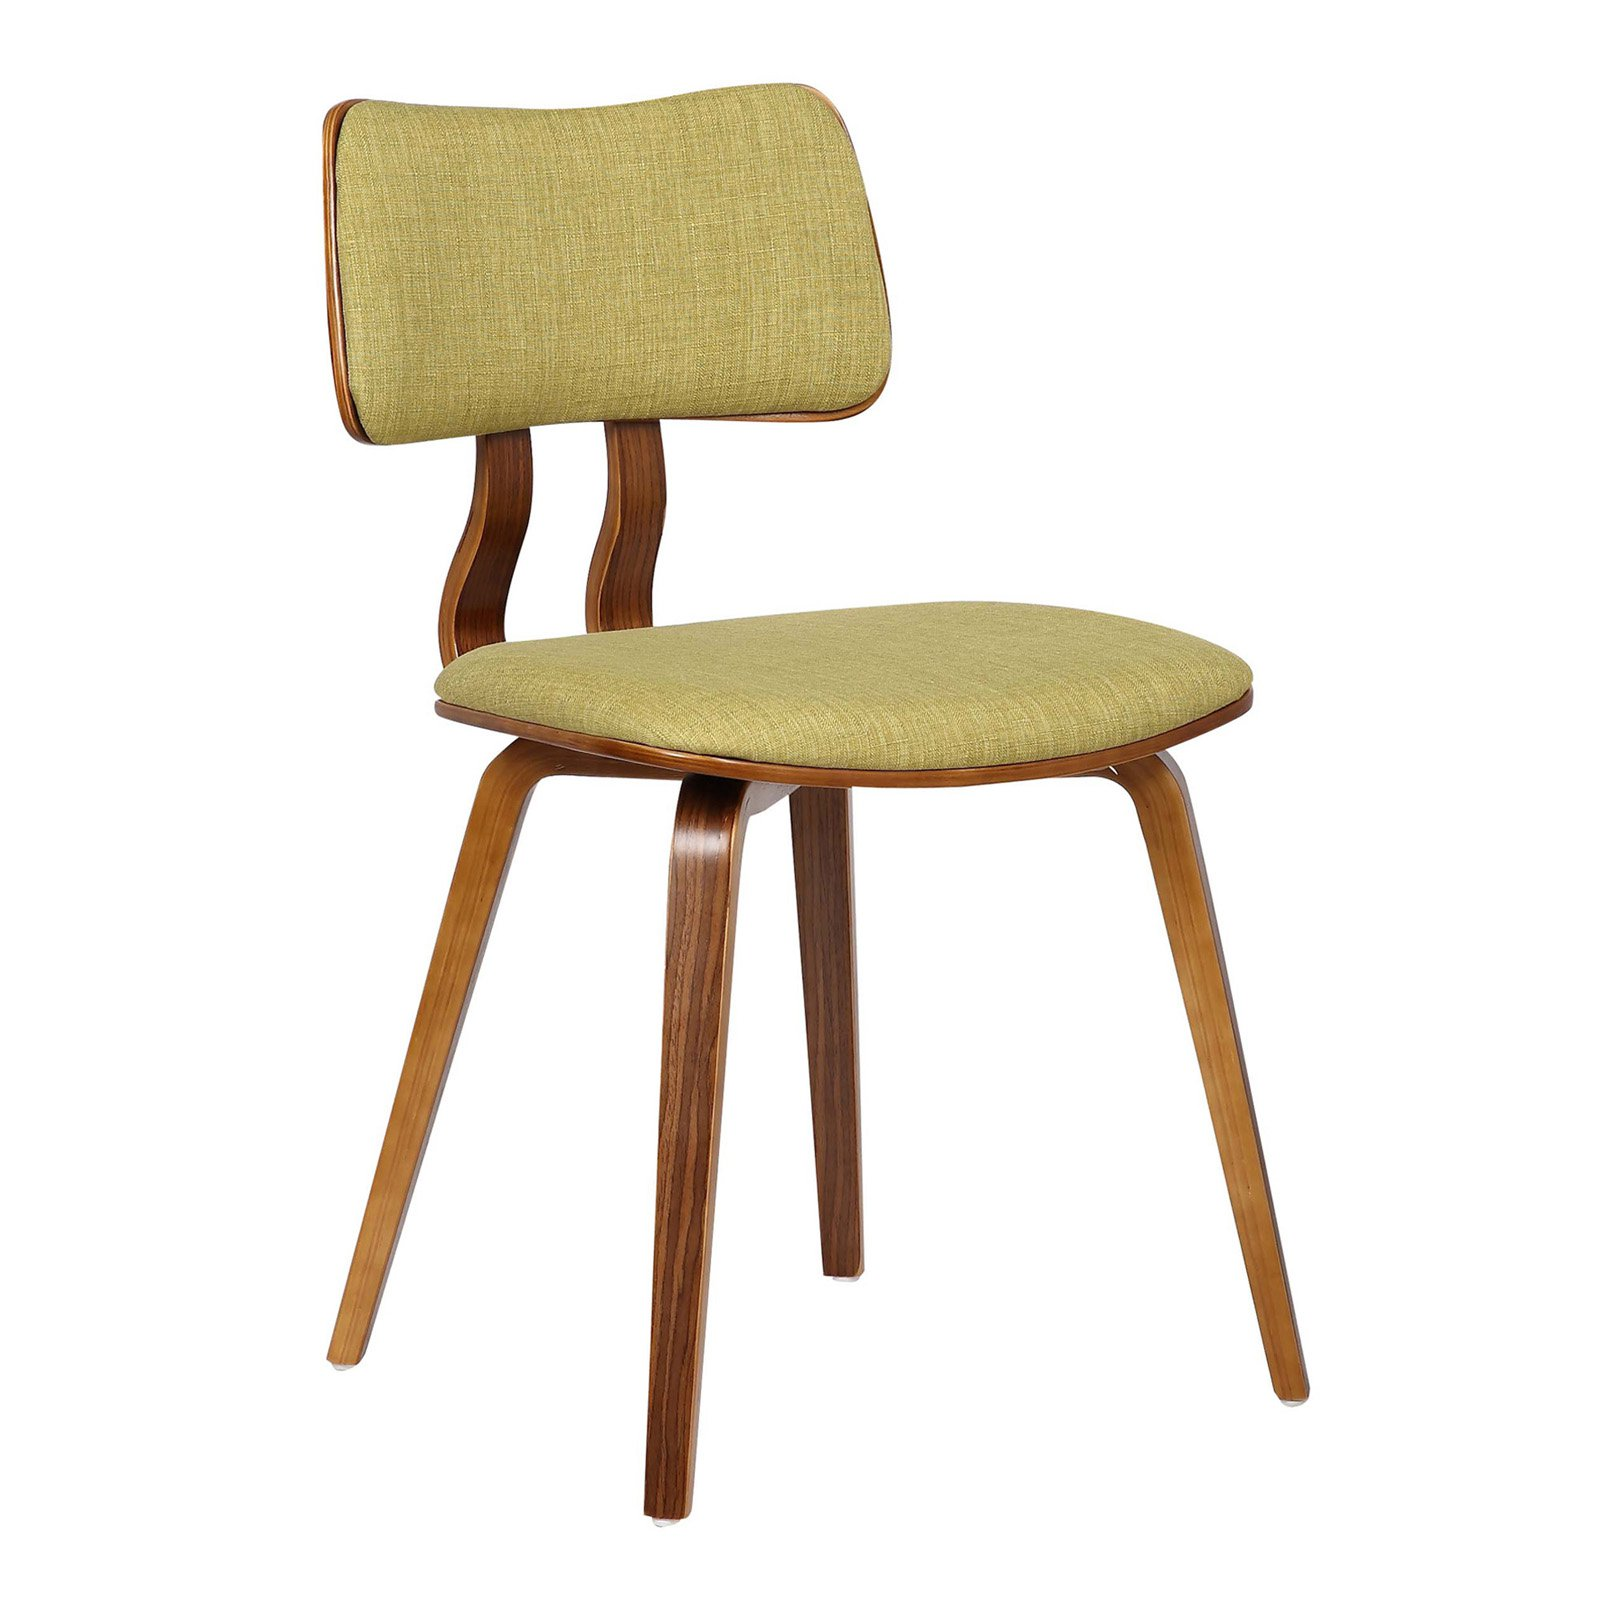 Armen Living Jaguar Mid-Century Dining Chair in Walnut Wood and Fabric by Armen Living